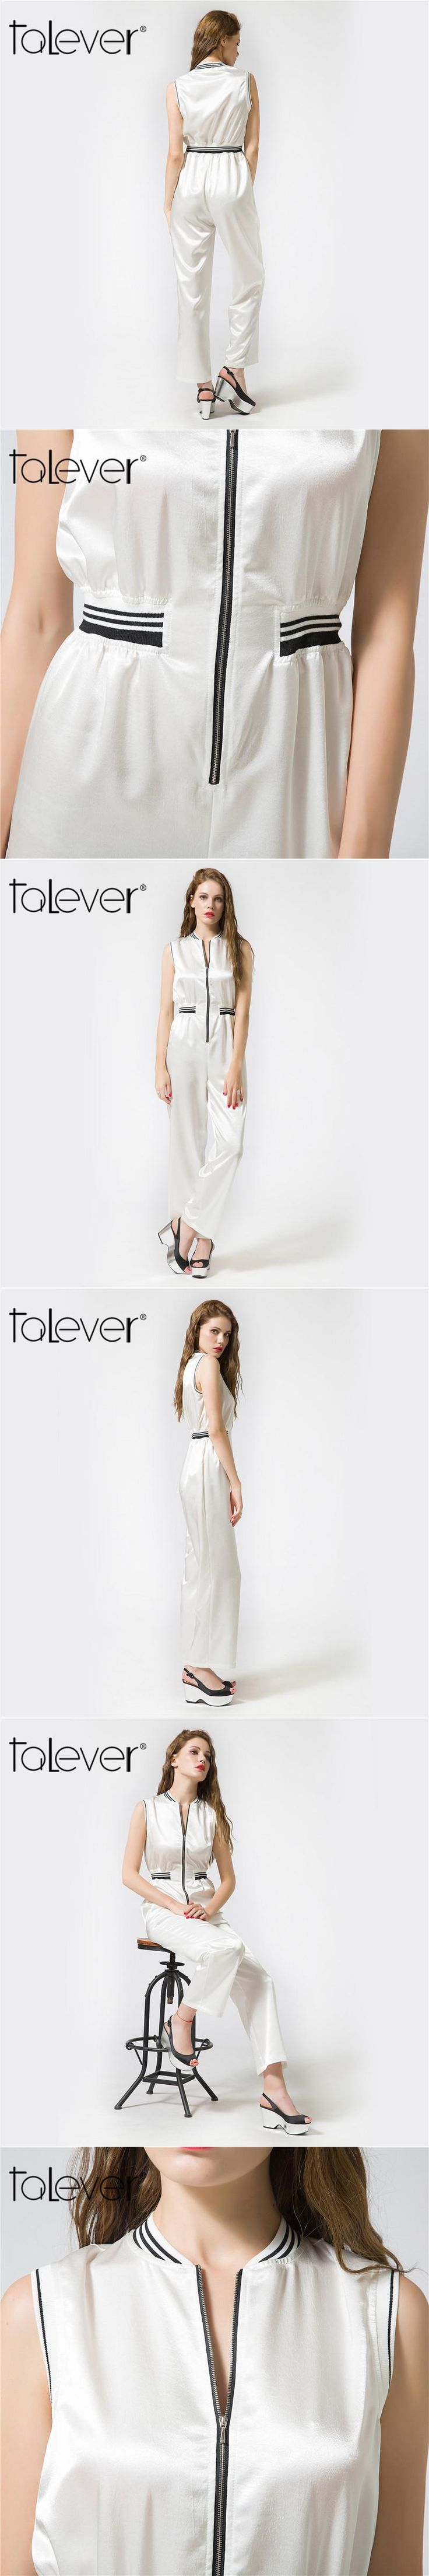 Talever 2017 Fashion White Playsuits Women Elegant Summer O Neck Jumpsuits Rompers Sexy Seleeveless Zipper Closure Overalls